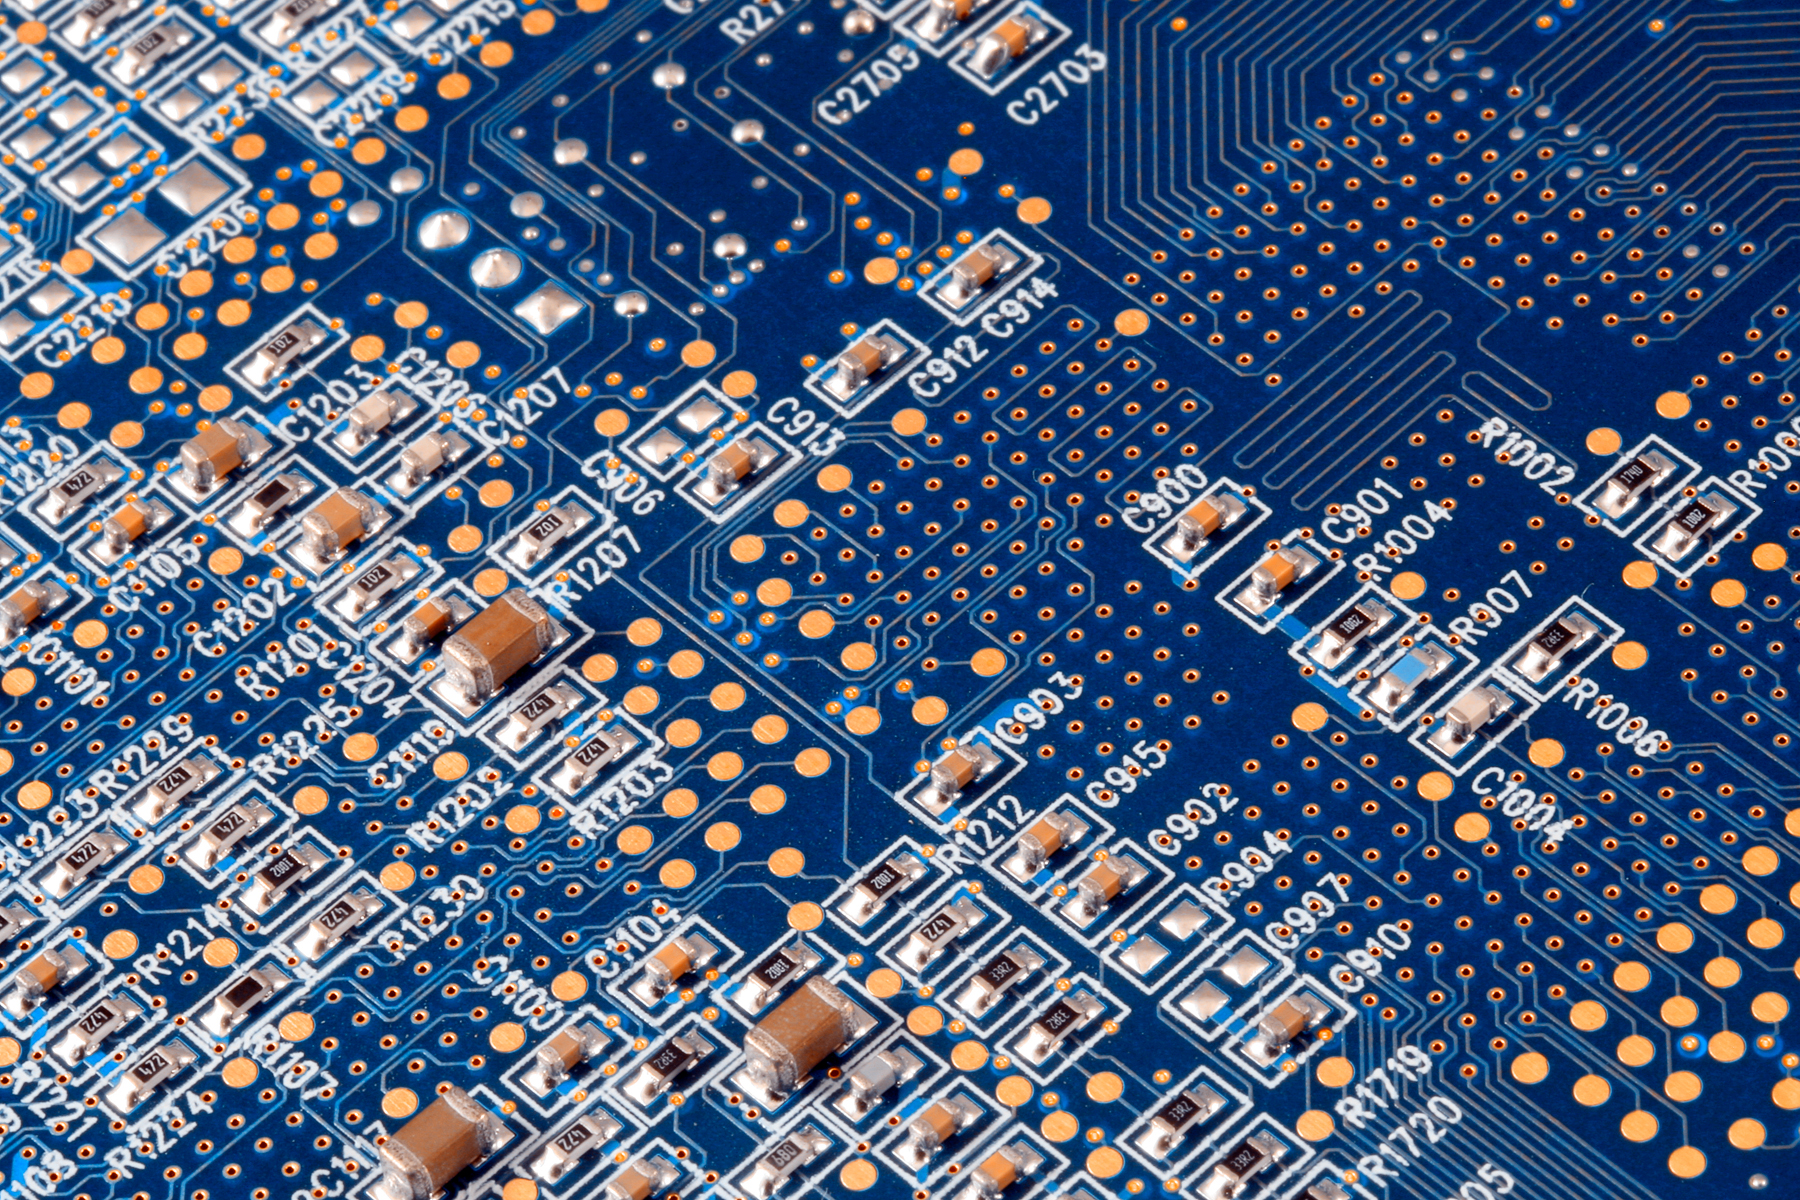 Circuit board close-up photo